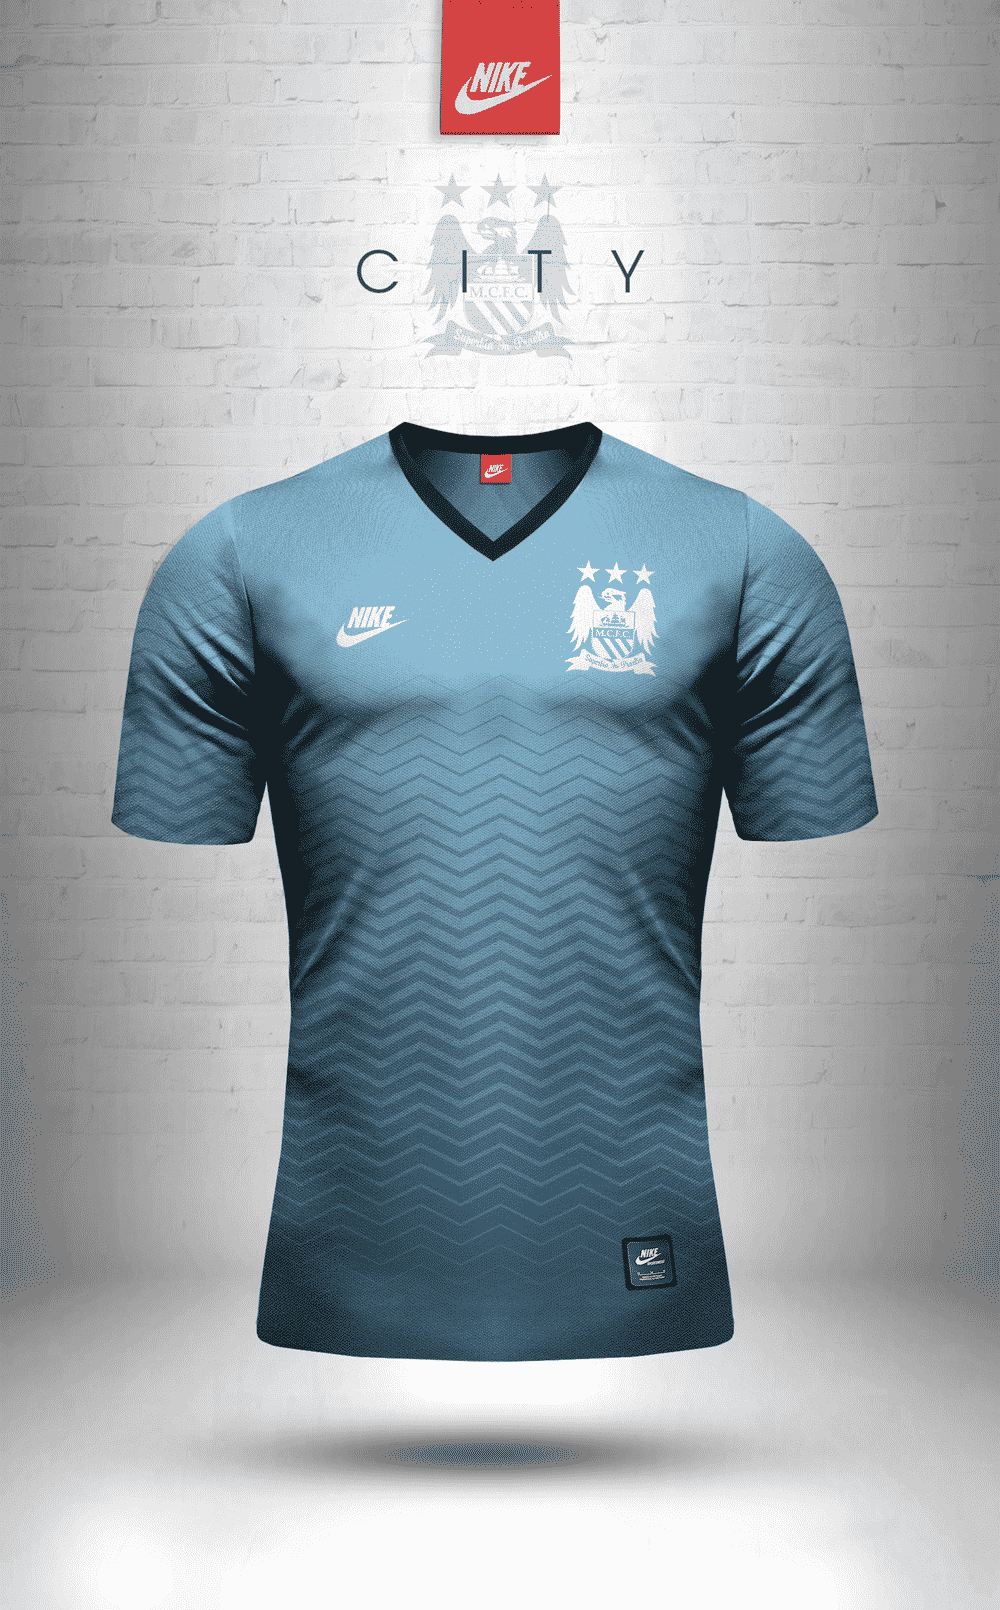 maillot-manchester-city-nike-sportswear